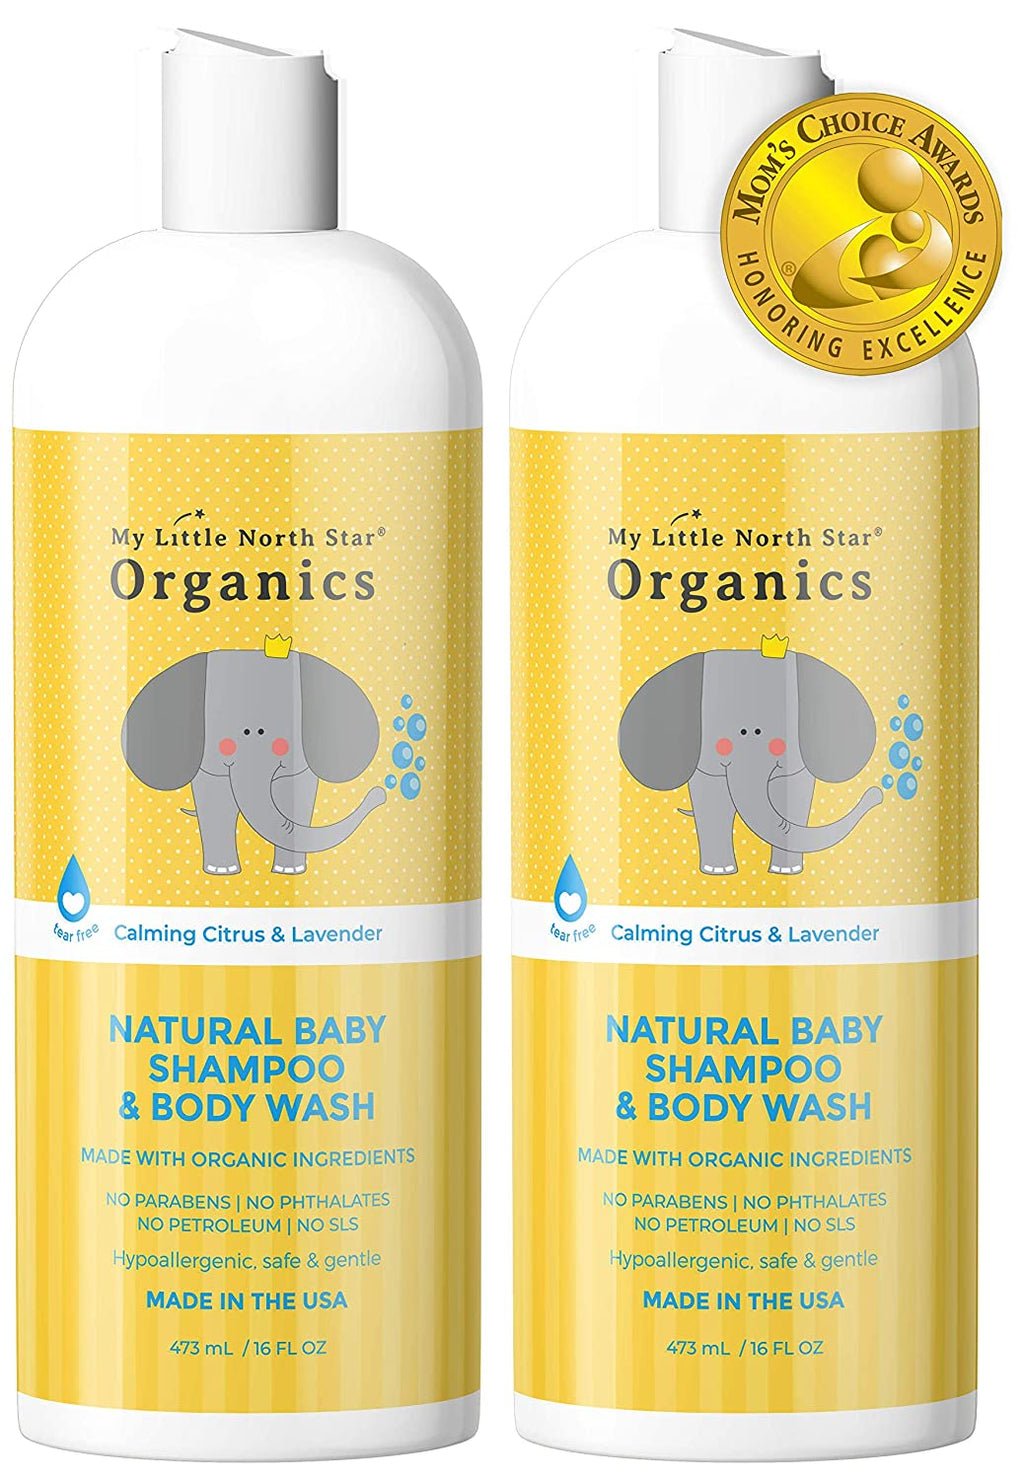 My Little North Star Organics Shampoo - My Simple Changes